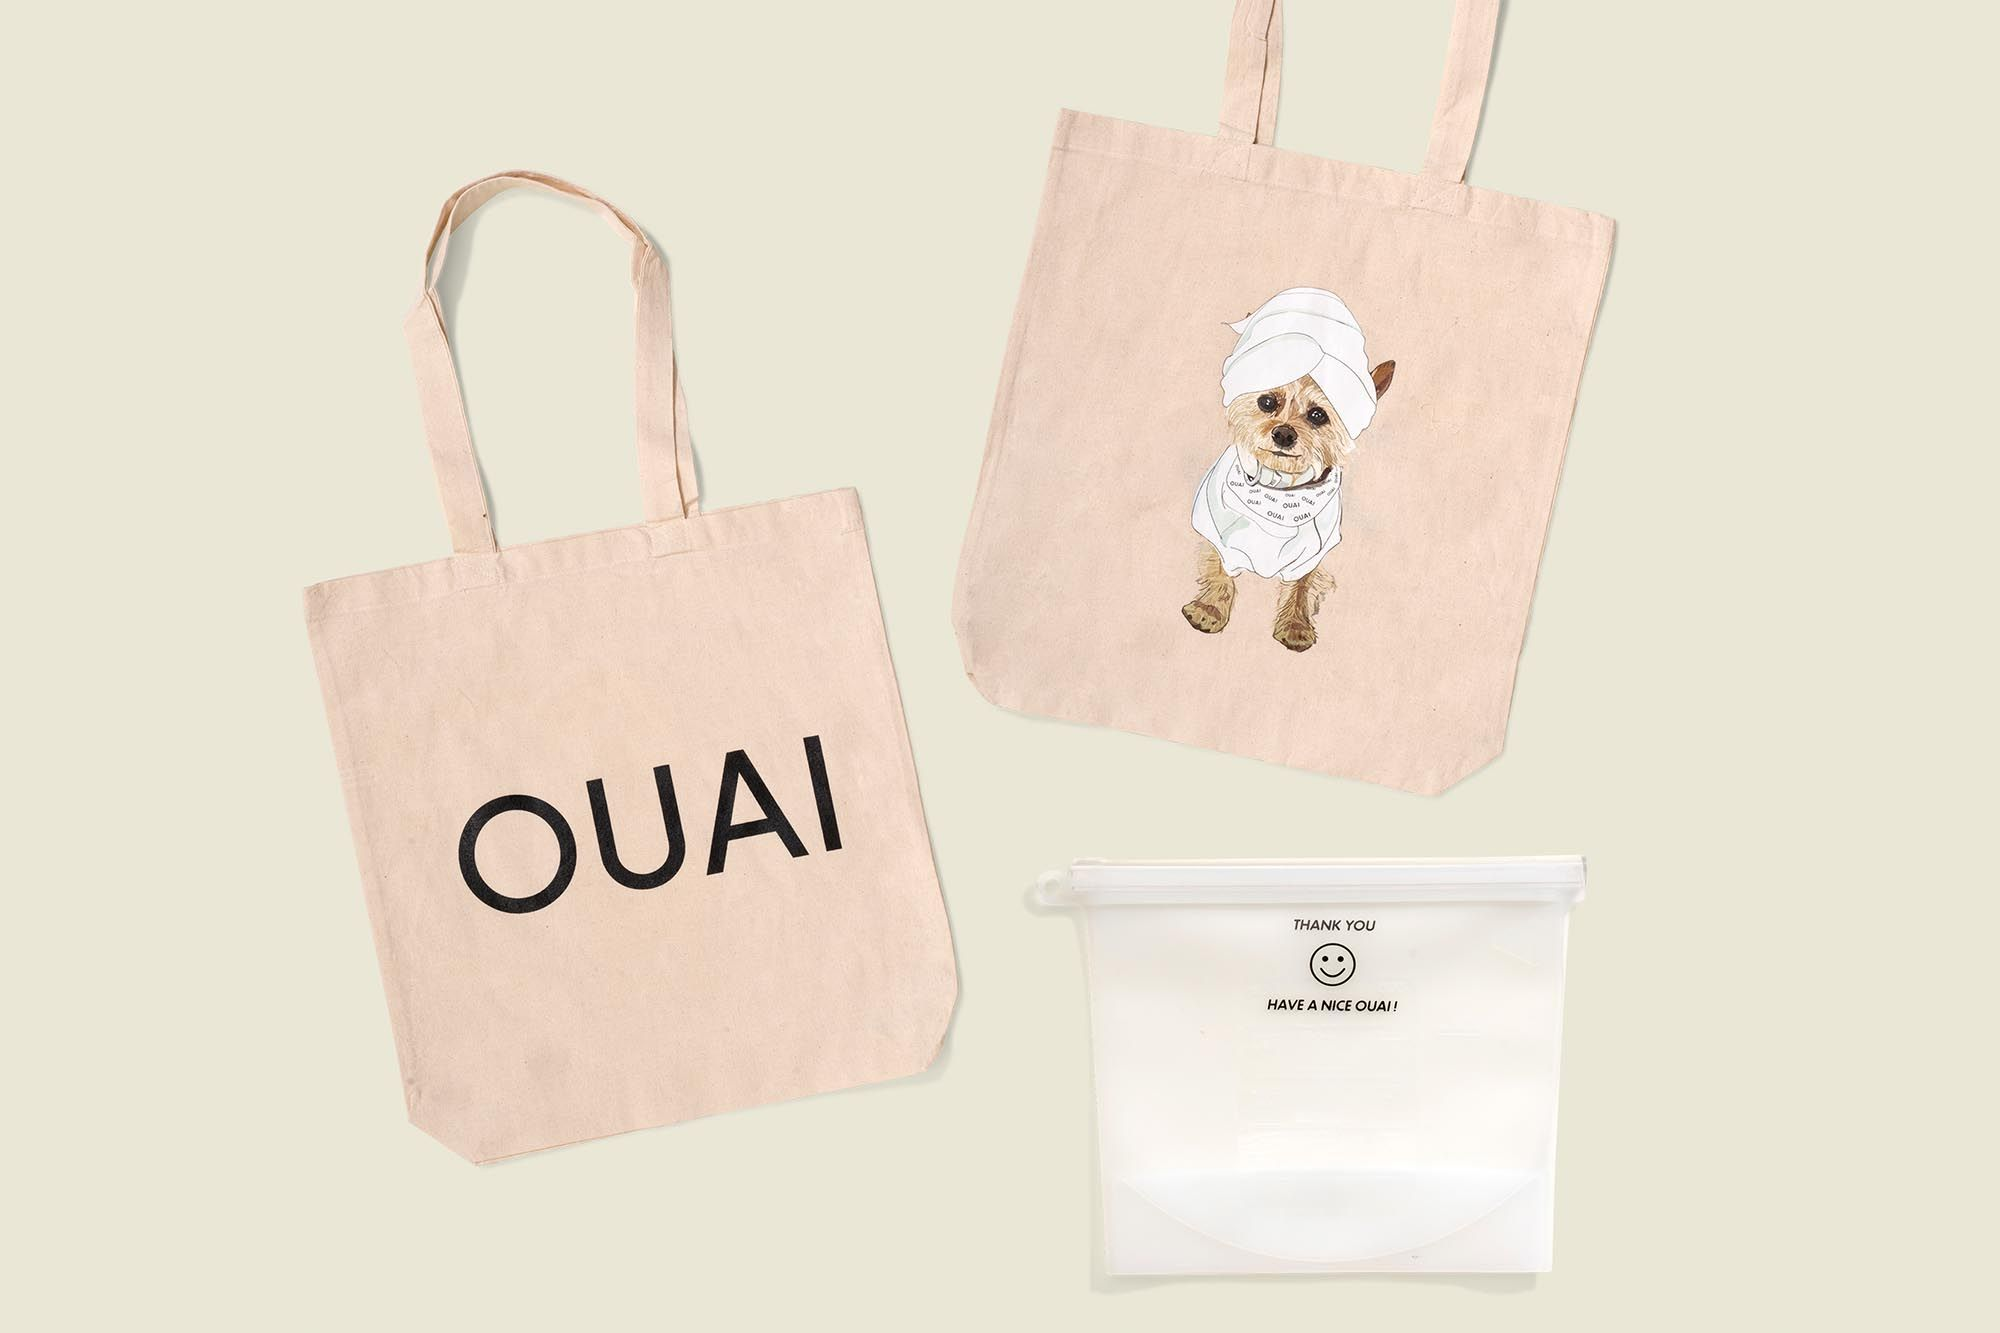 Set of tote bags with pouch